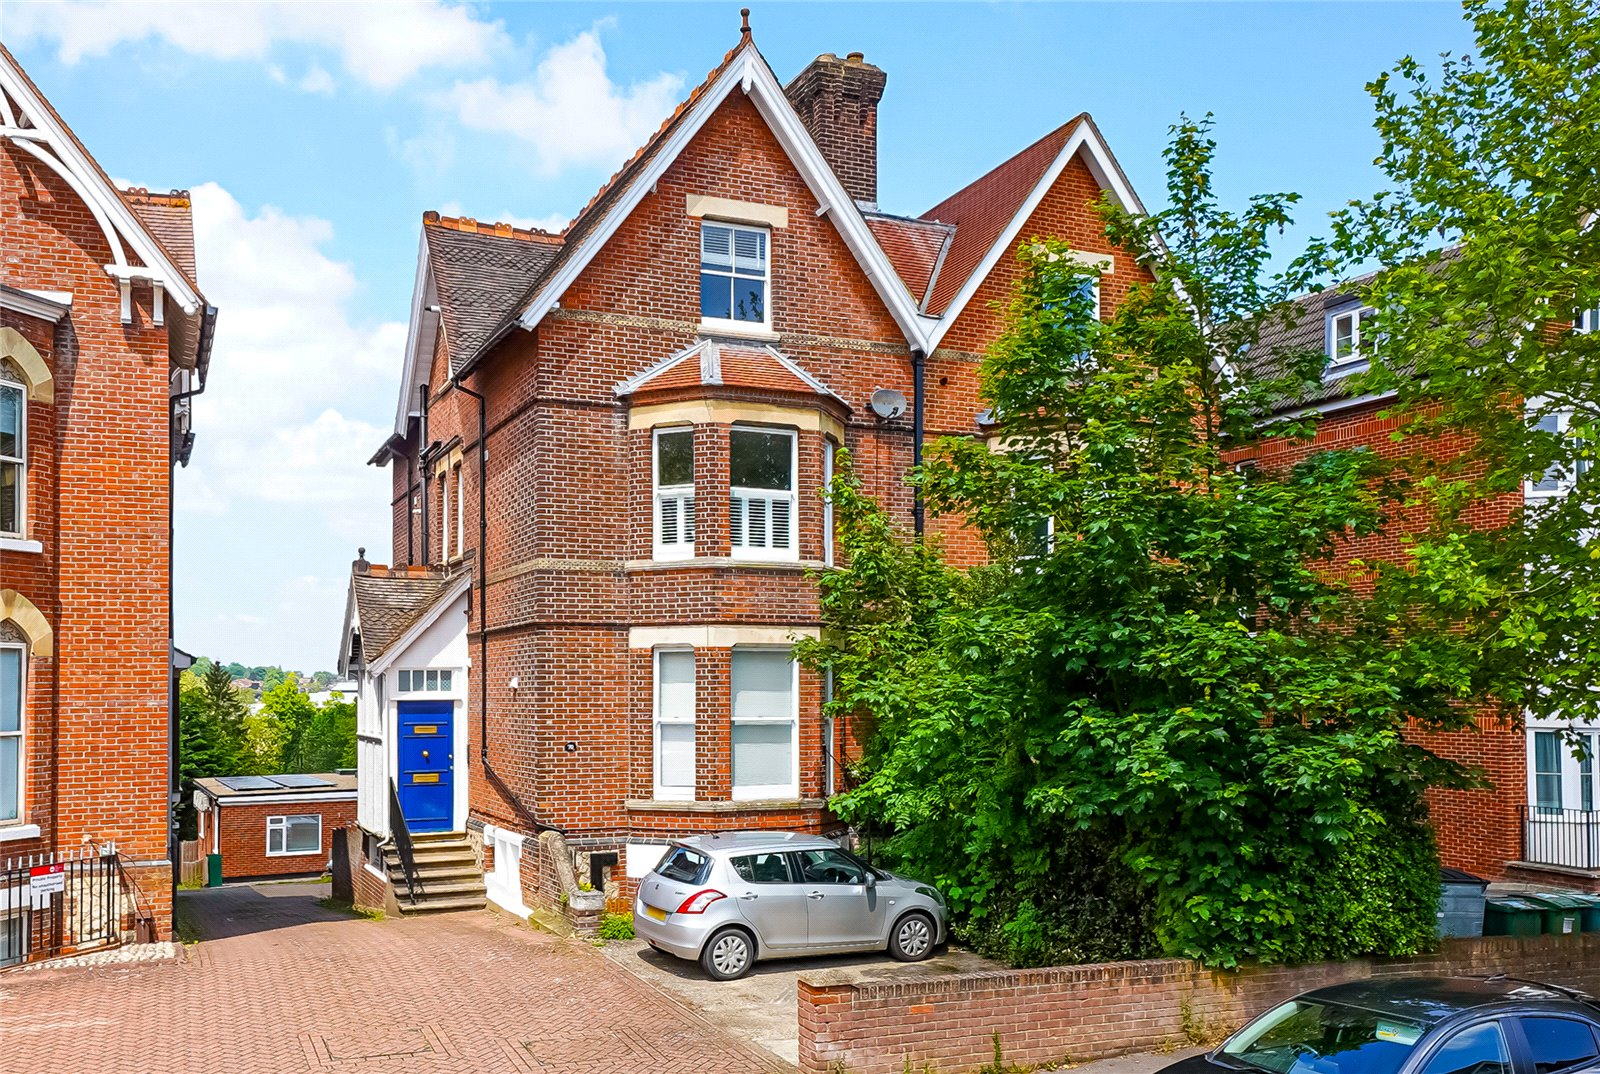 2 bed apartment for sale in College Road, Maidstone, ME15